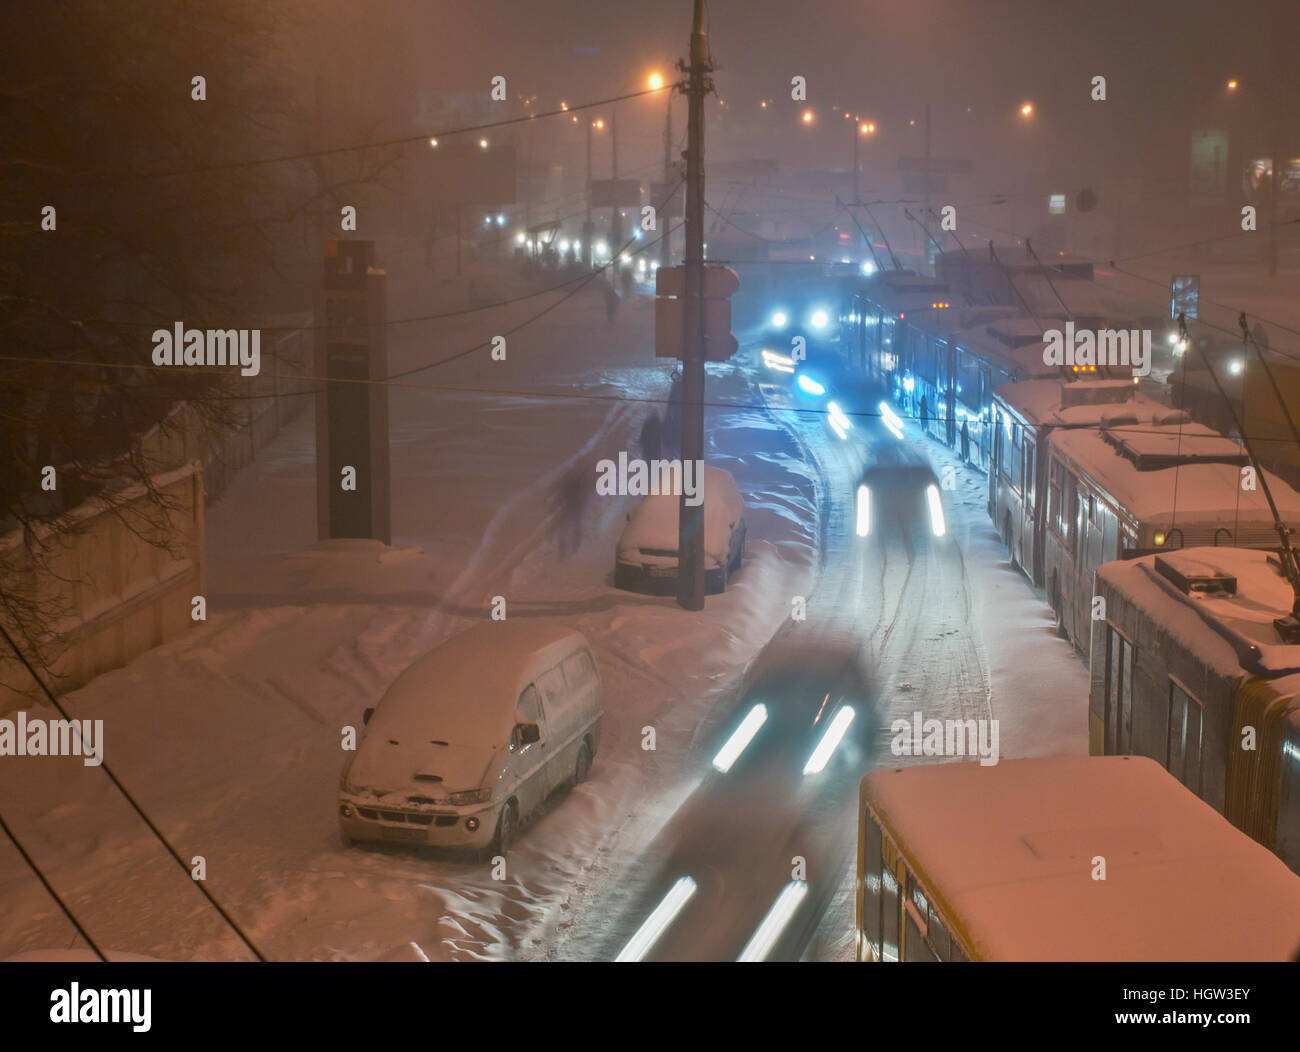 a lot of trolleybuses are in traffic because of a snowy and slippery roads, kyiv, ukraine. - Stock Image